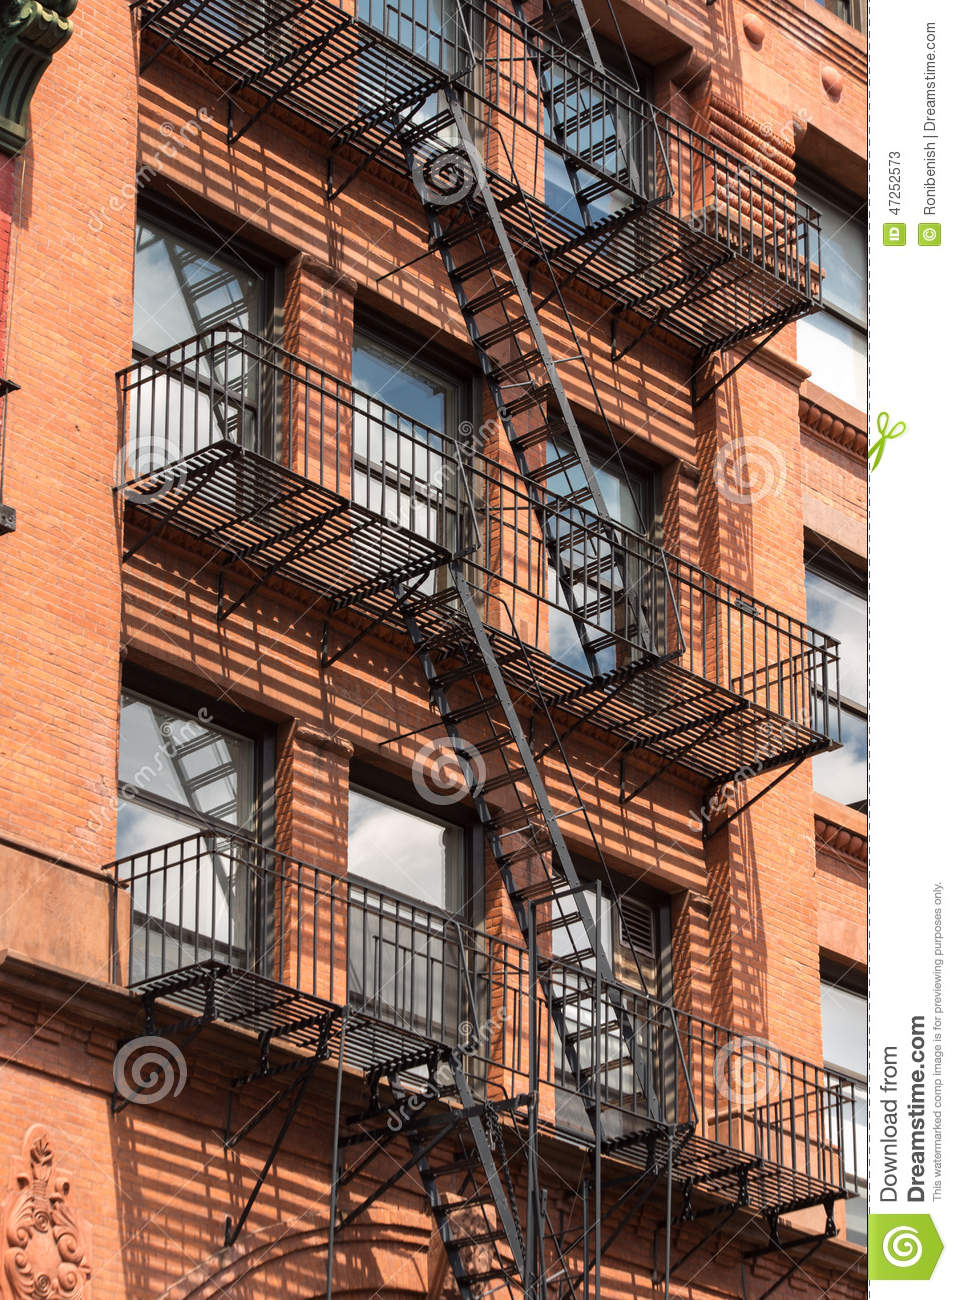 fire-escape-stairs-manhattan-new-york-city-usa-nyc-47252573.jpg